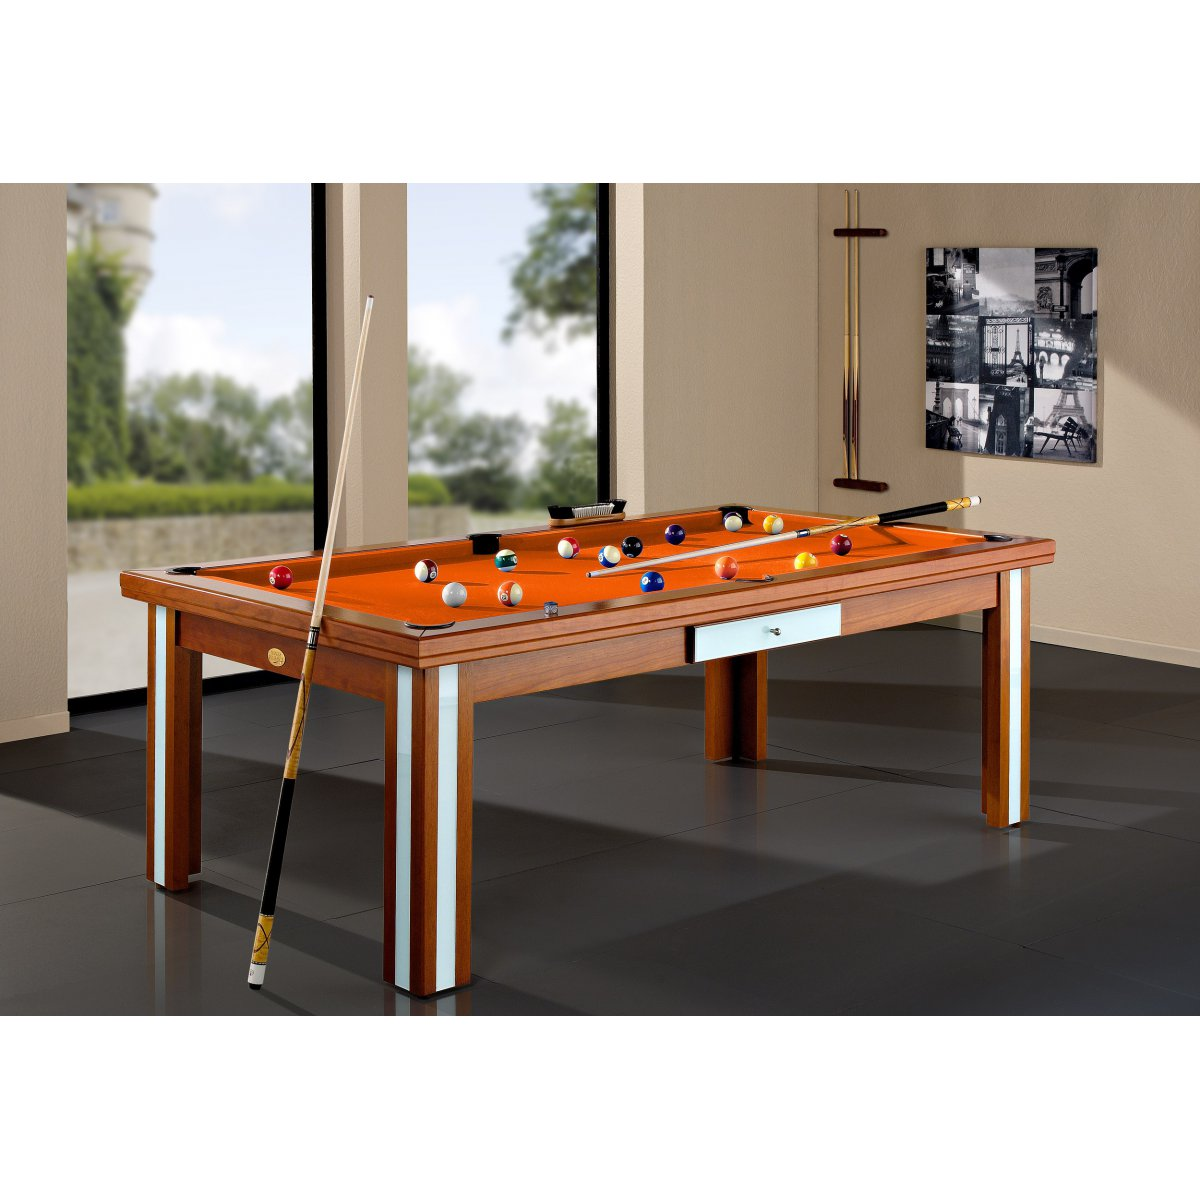 Salle a manger billard 28 images billard convertible for Table de salle a manger et billard